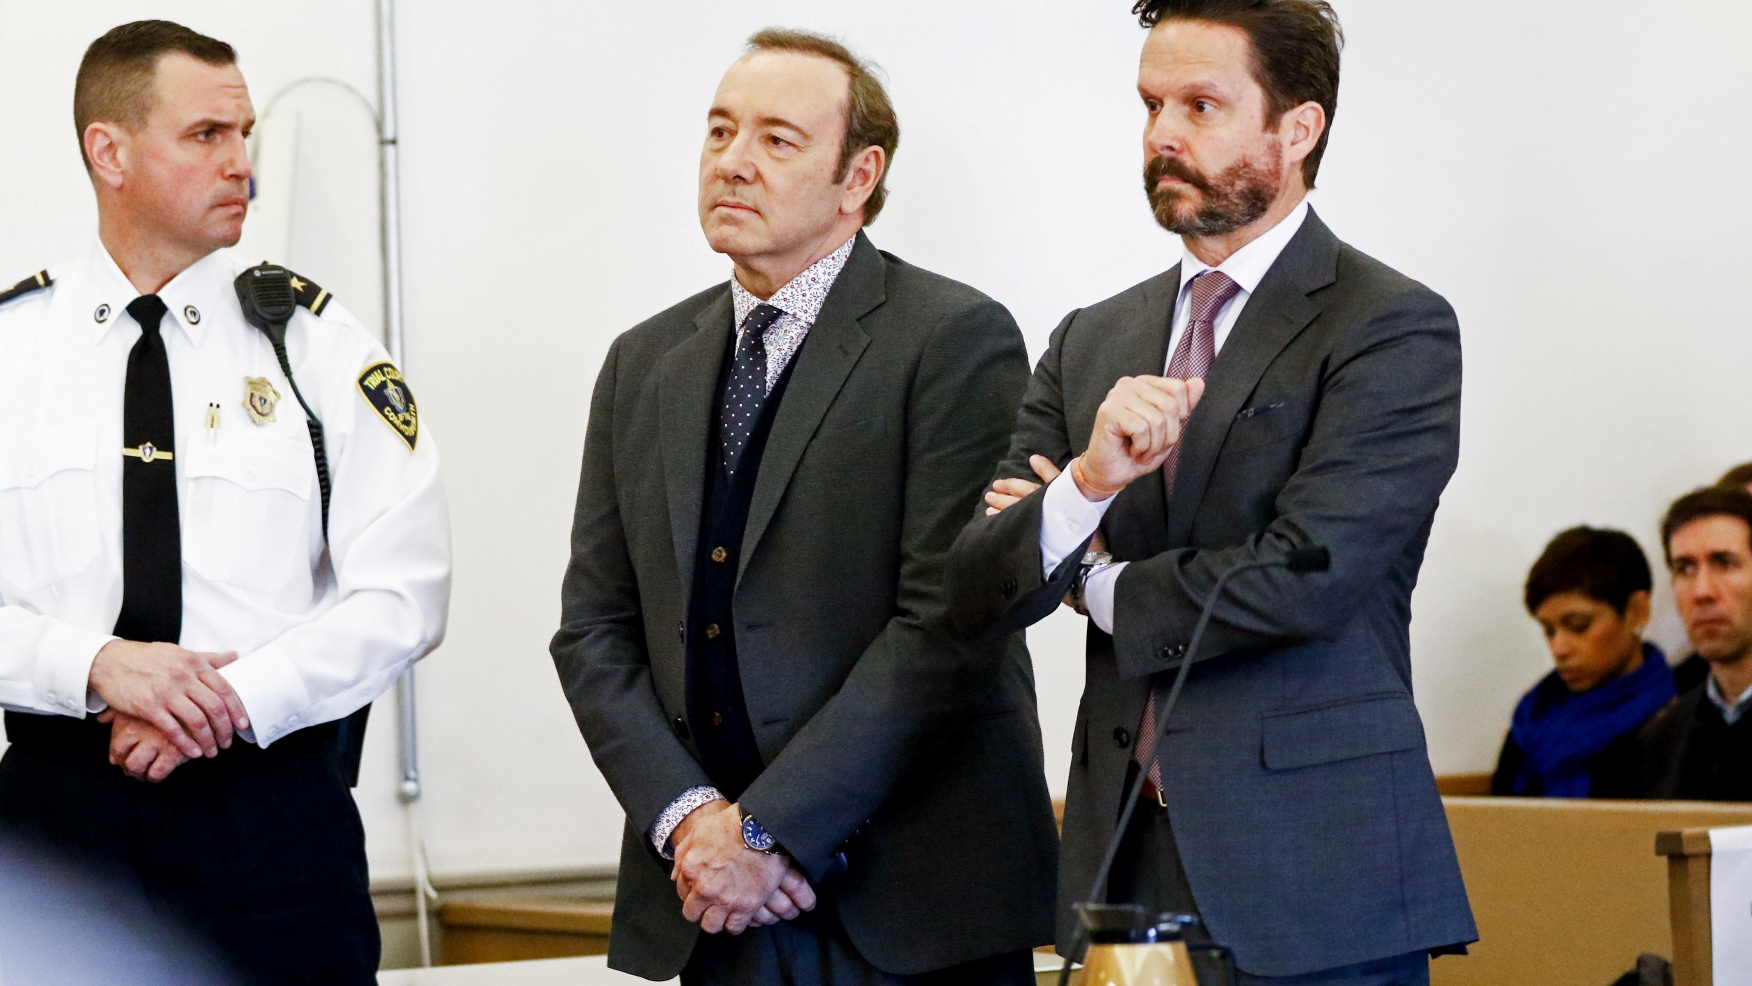 'He Did Not Object': Kevin Spacey's Defense Claims Sexual ...